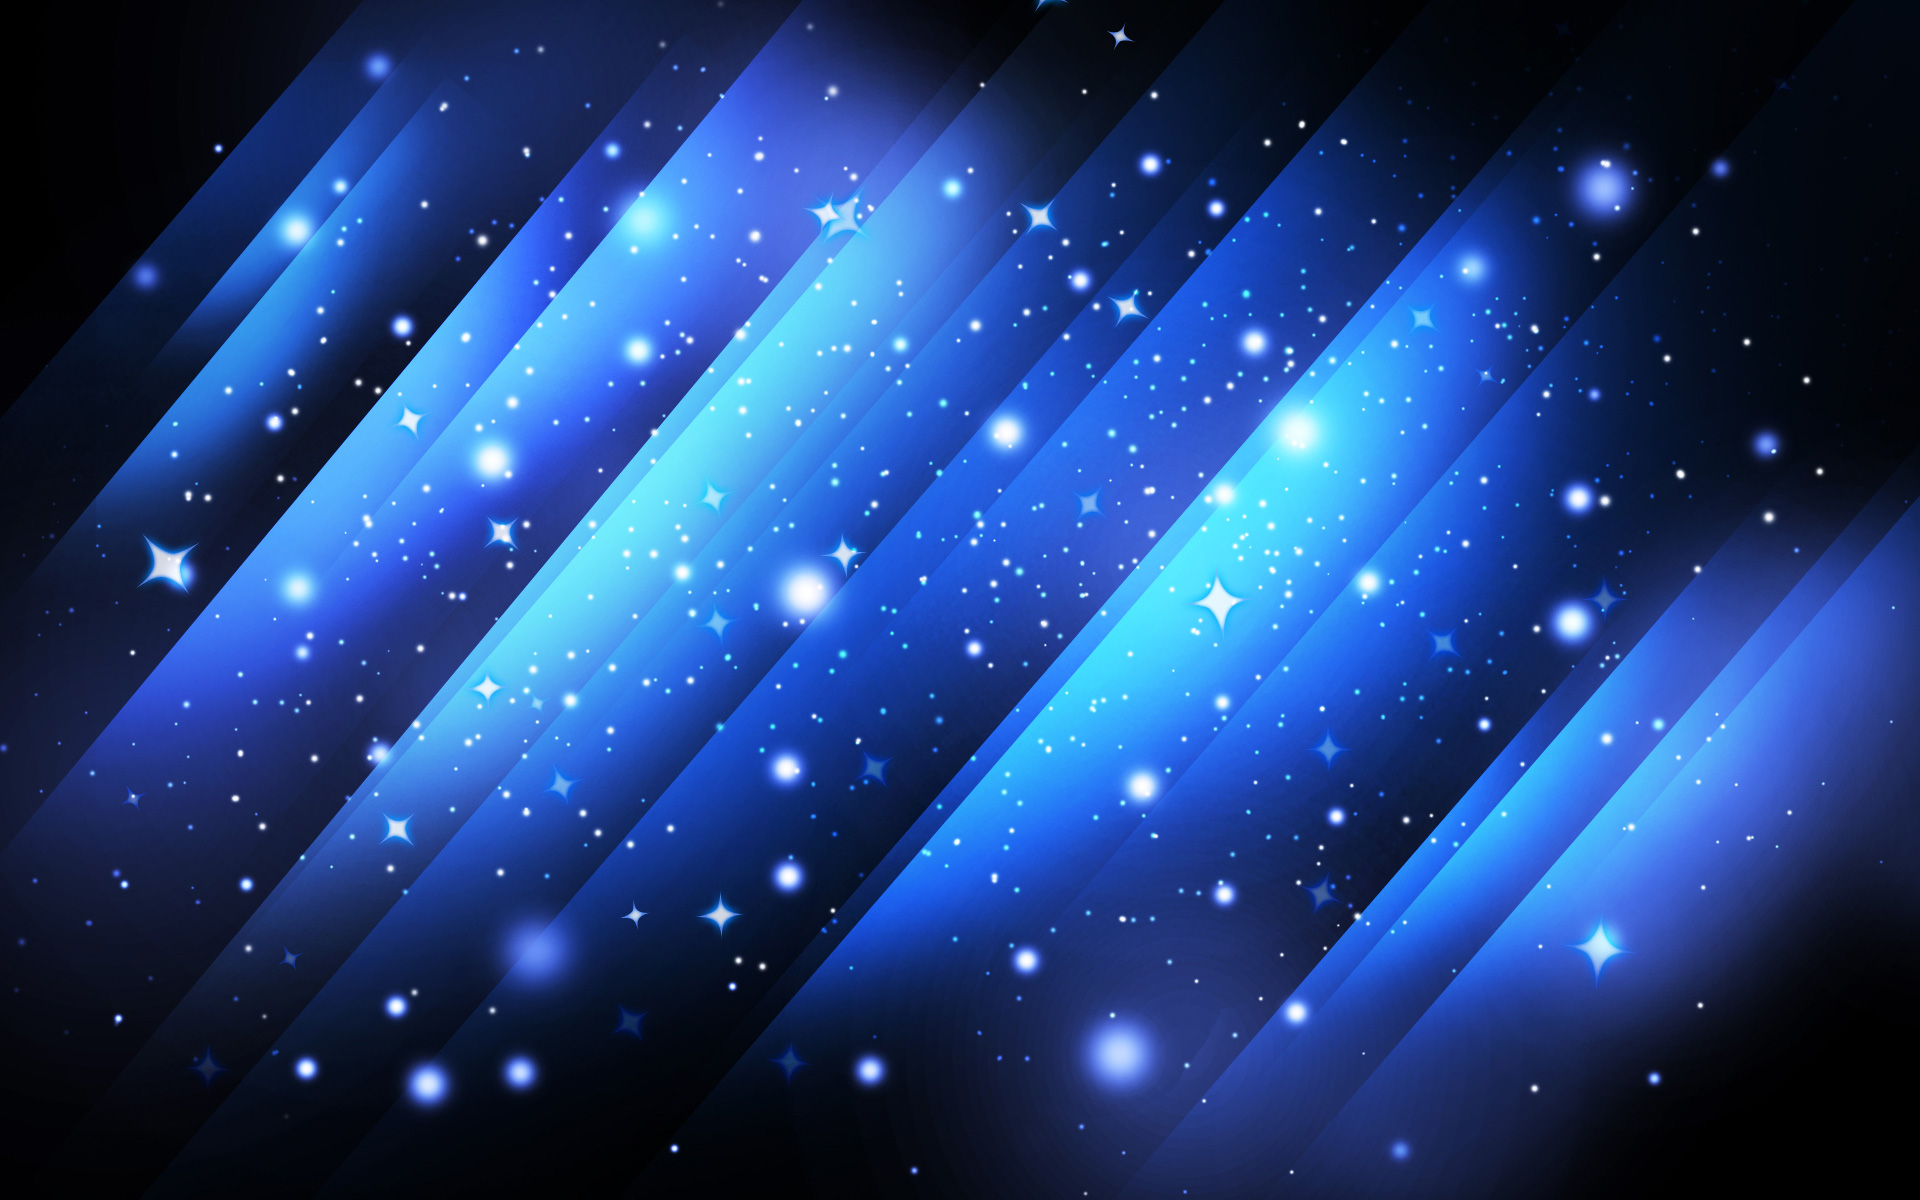 Background For Photoshop wallpaper 145277 1920x1200